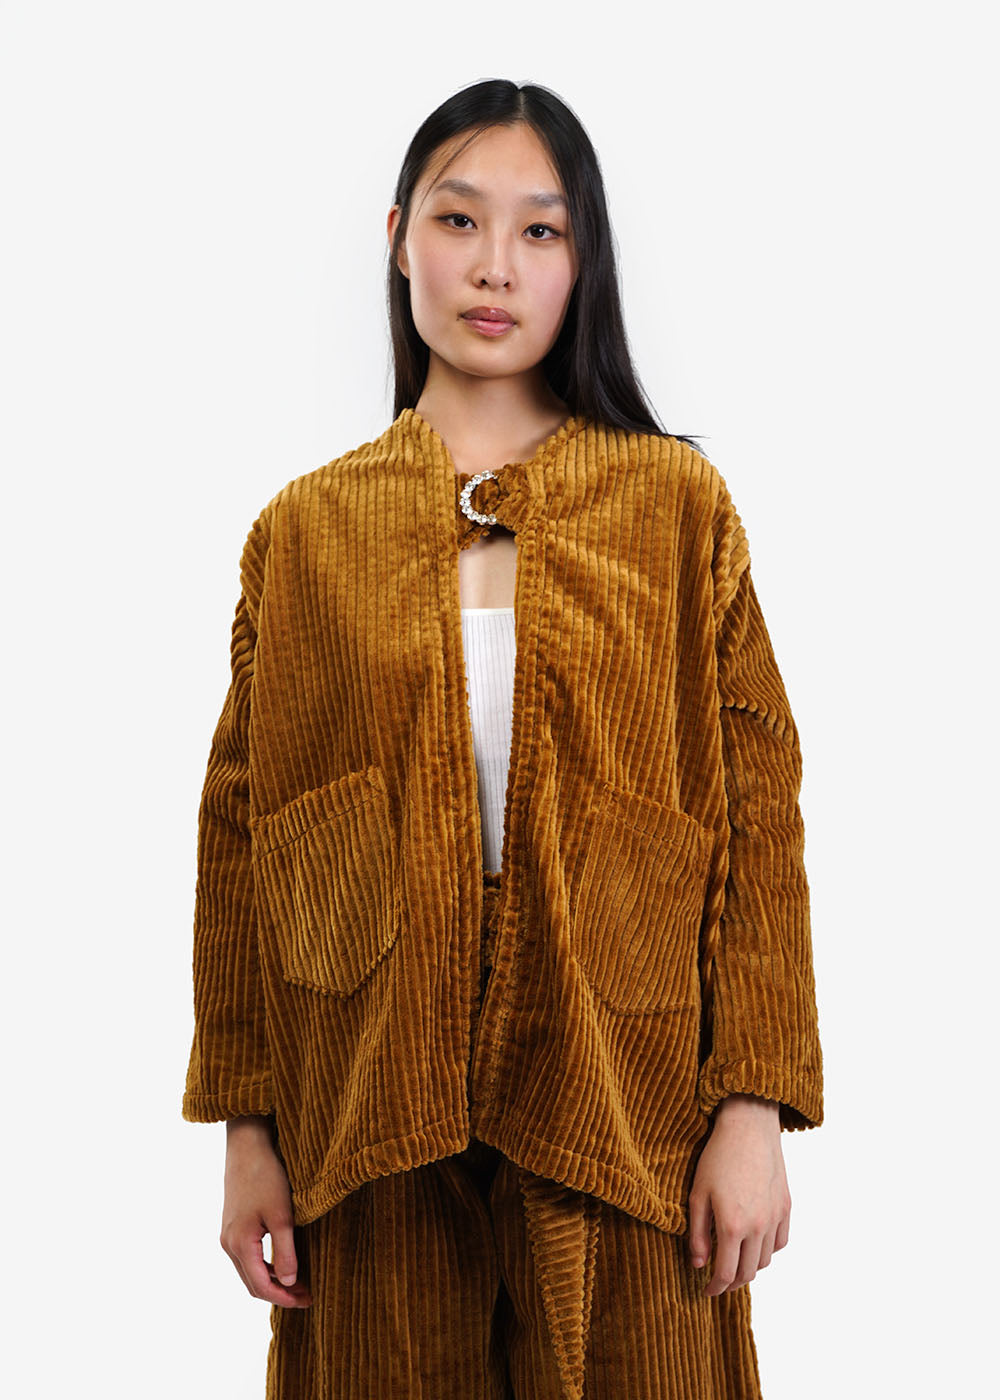 323 Broccoli Jacket — Shop sustainable fashion and slow fashion at New Classics Studios